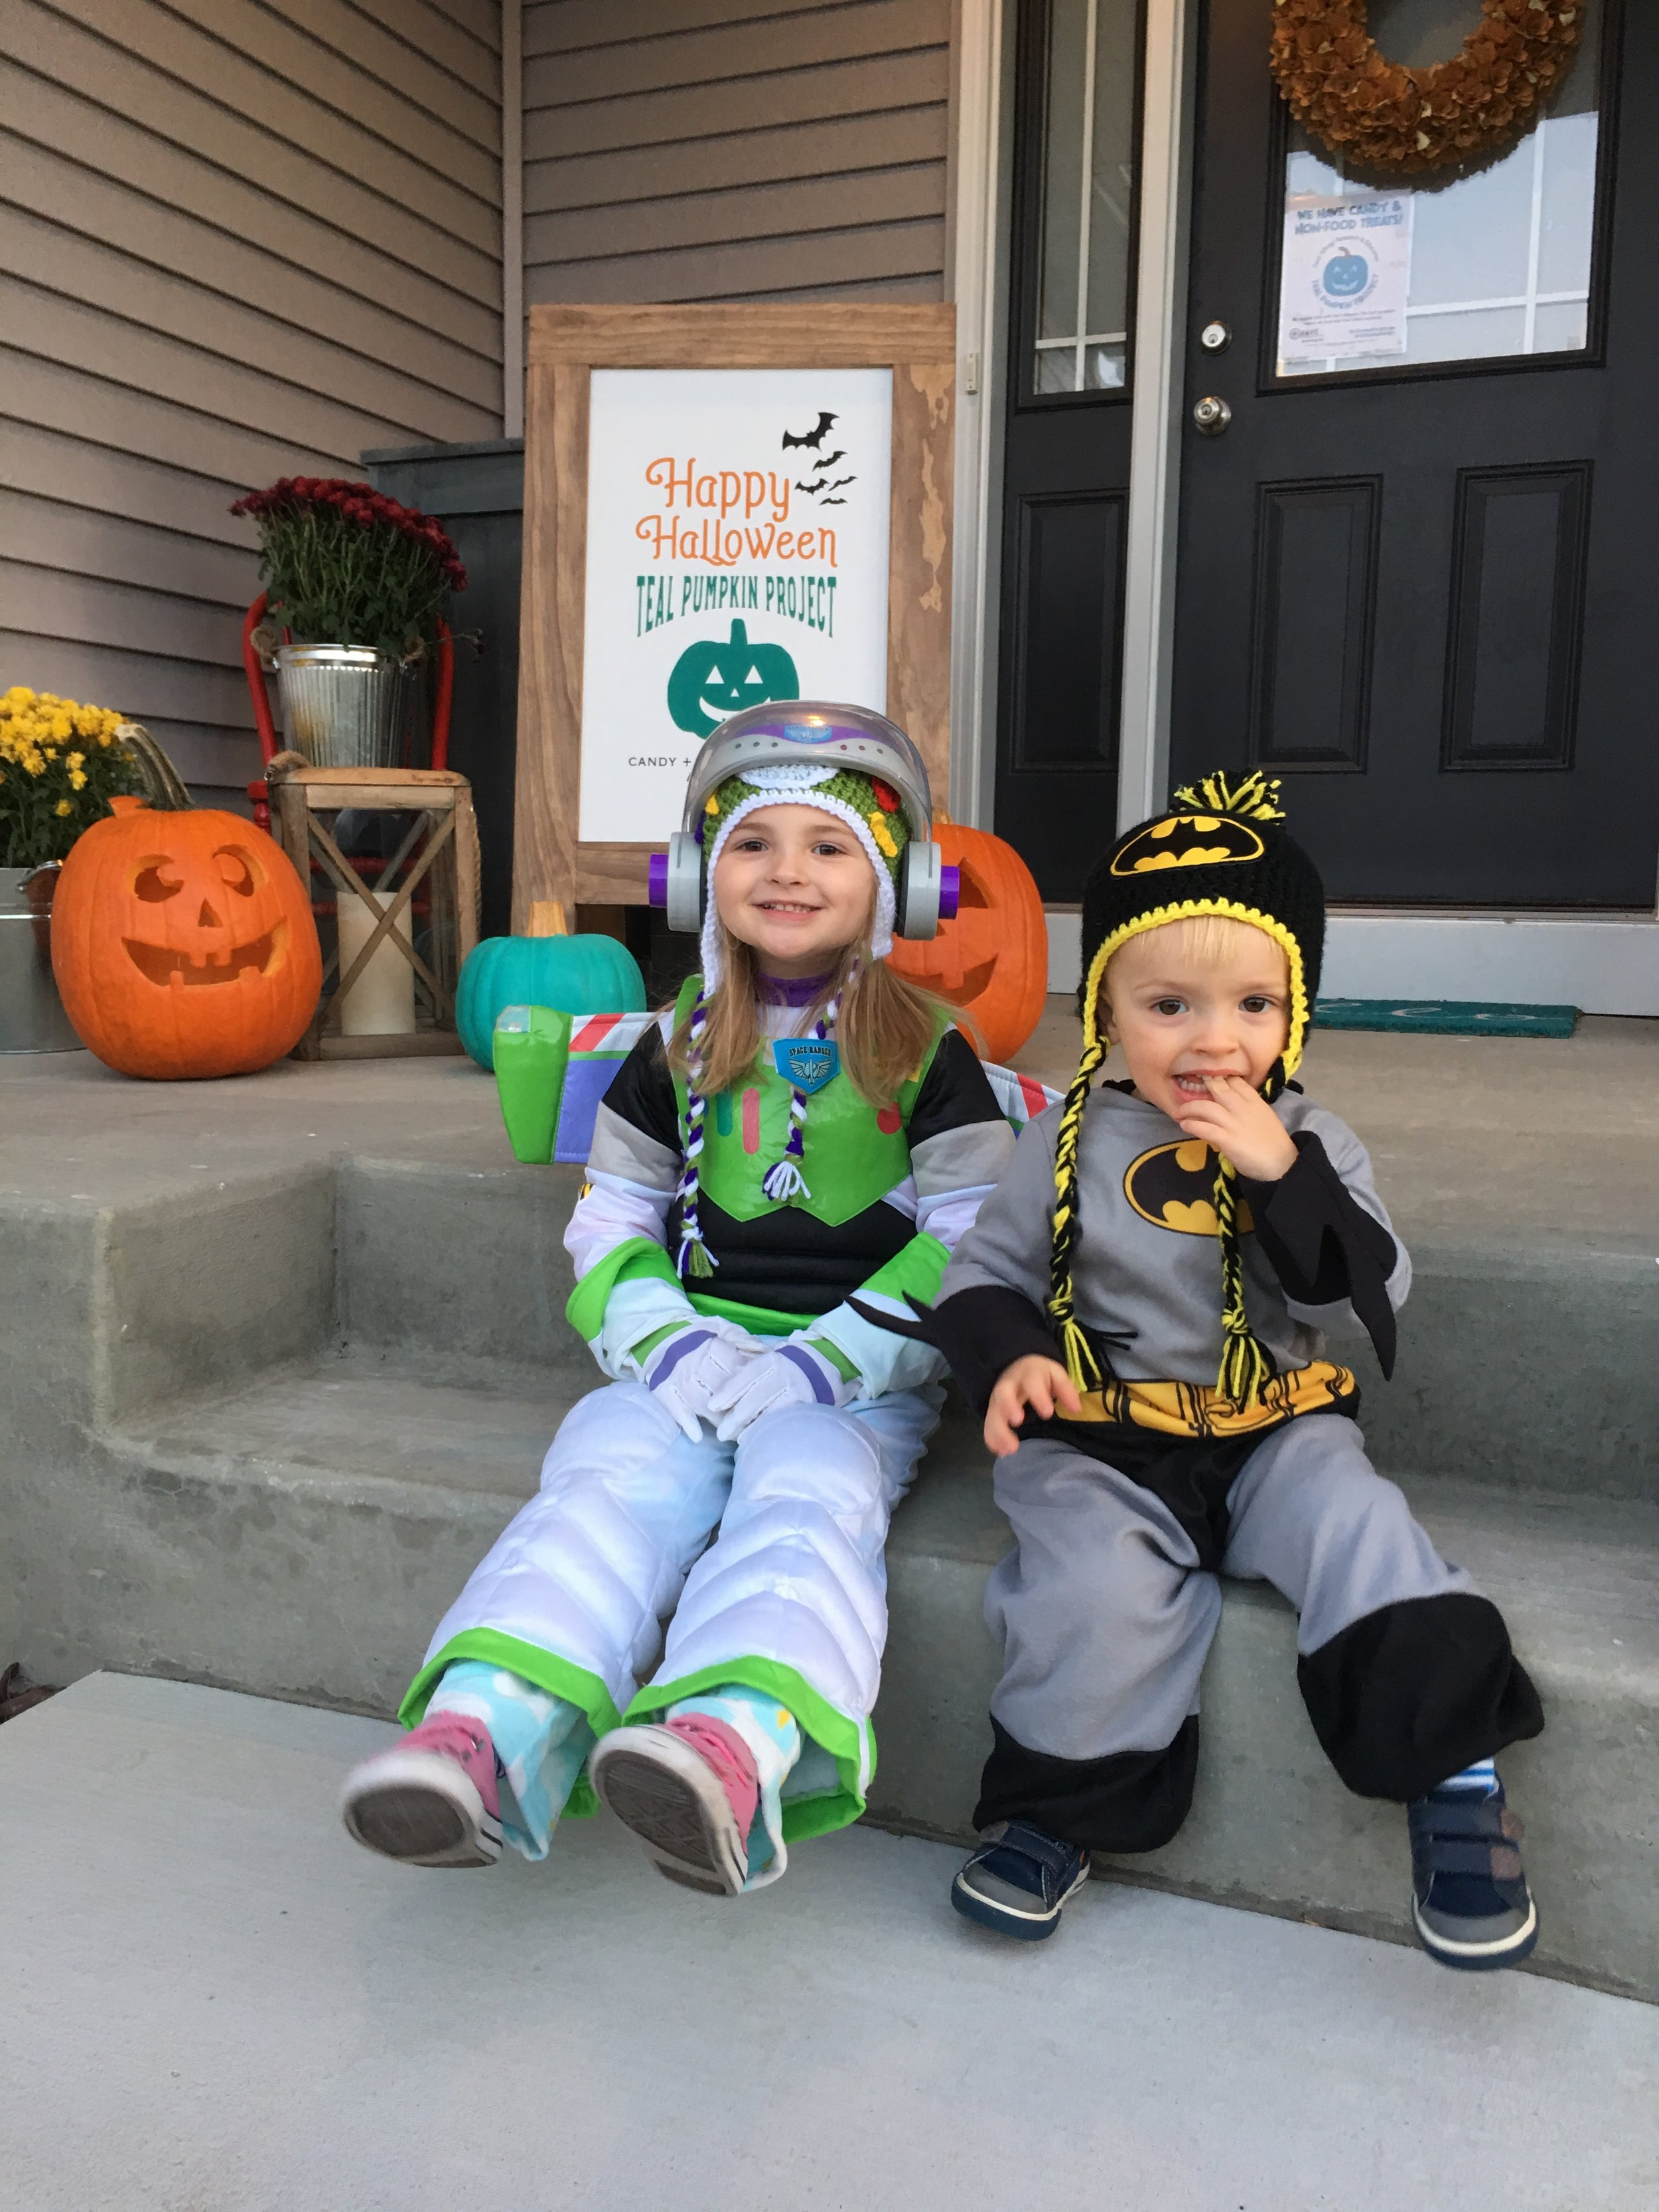 Buzz Lightyear and Batman all ready for some Teal Pumpkin Trick-or-Treating